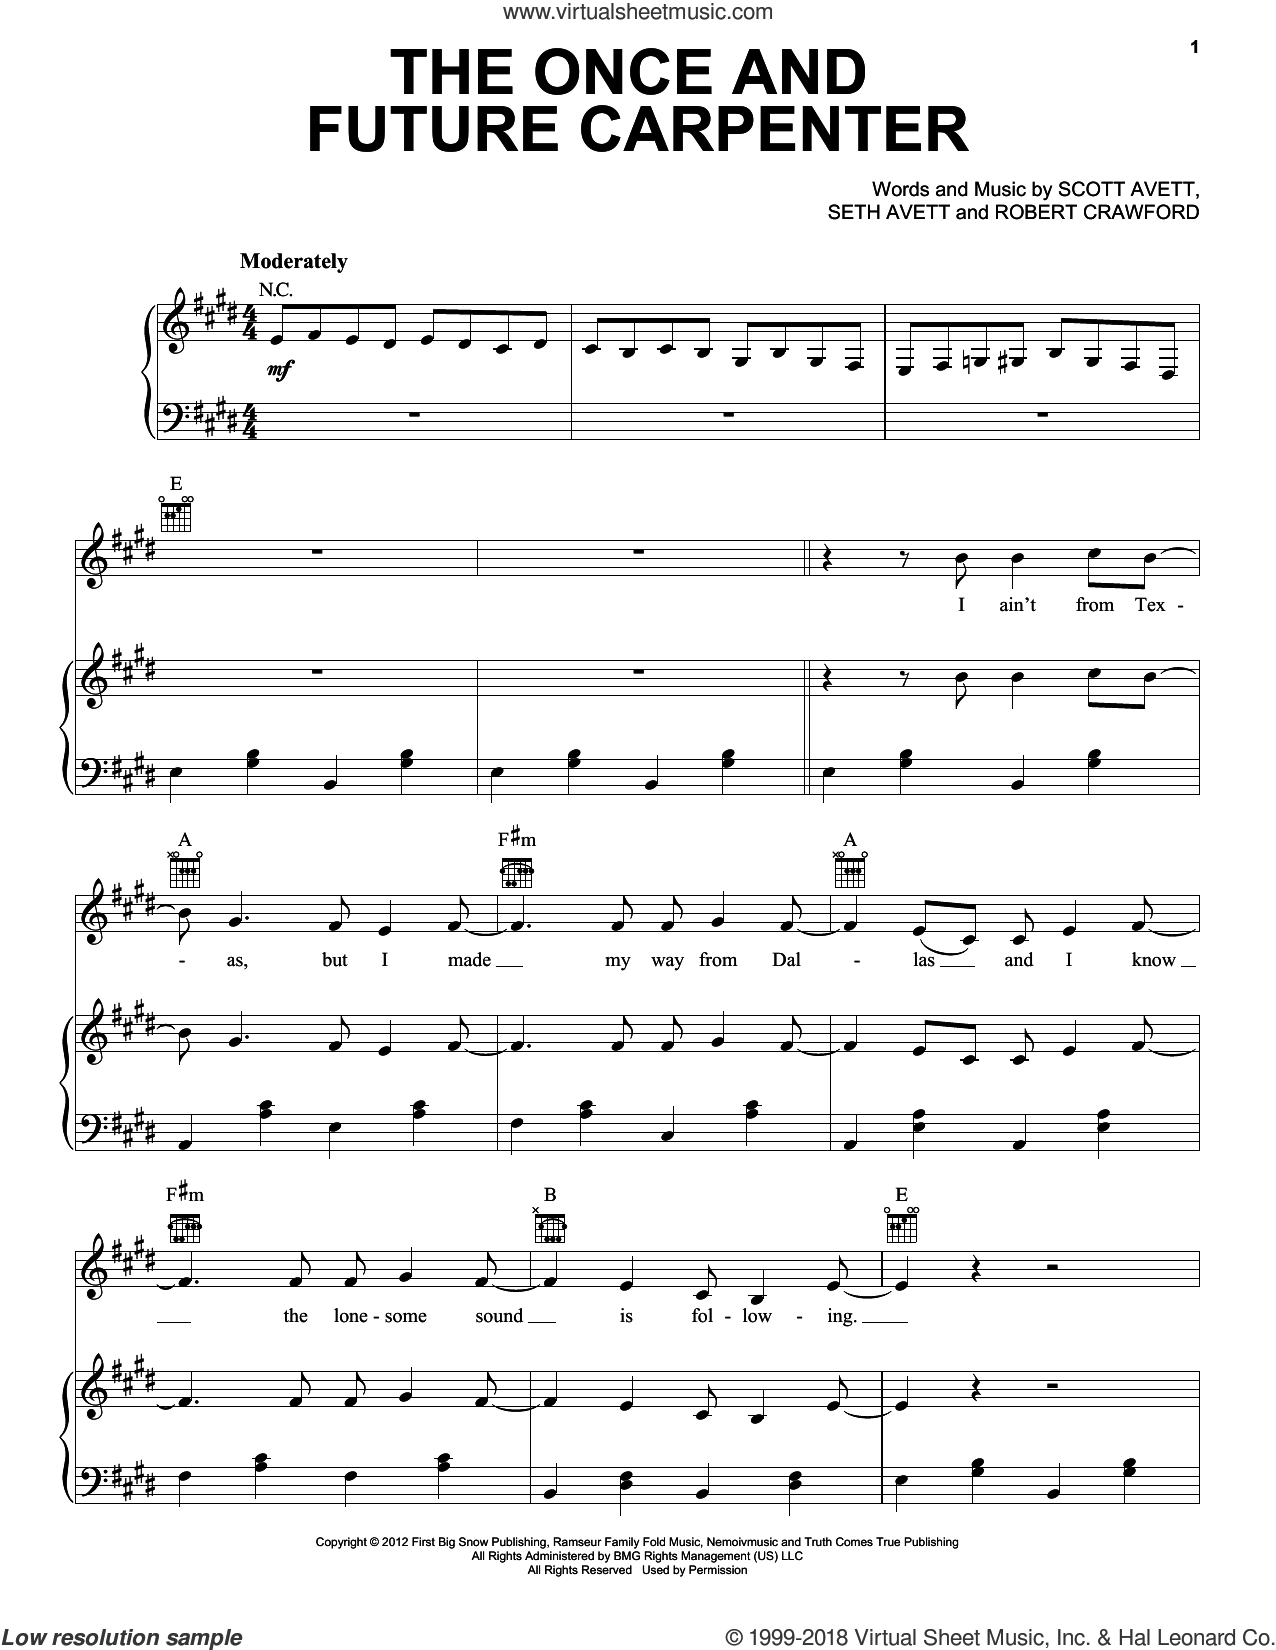 The Once And Future Carpenter sheet music for voice, piano or guitar by The Avett Brothers, Avett Brothers, Robert Crawford, Scott Avett and Seth Avett, intermediate skill level